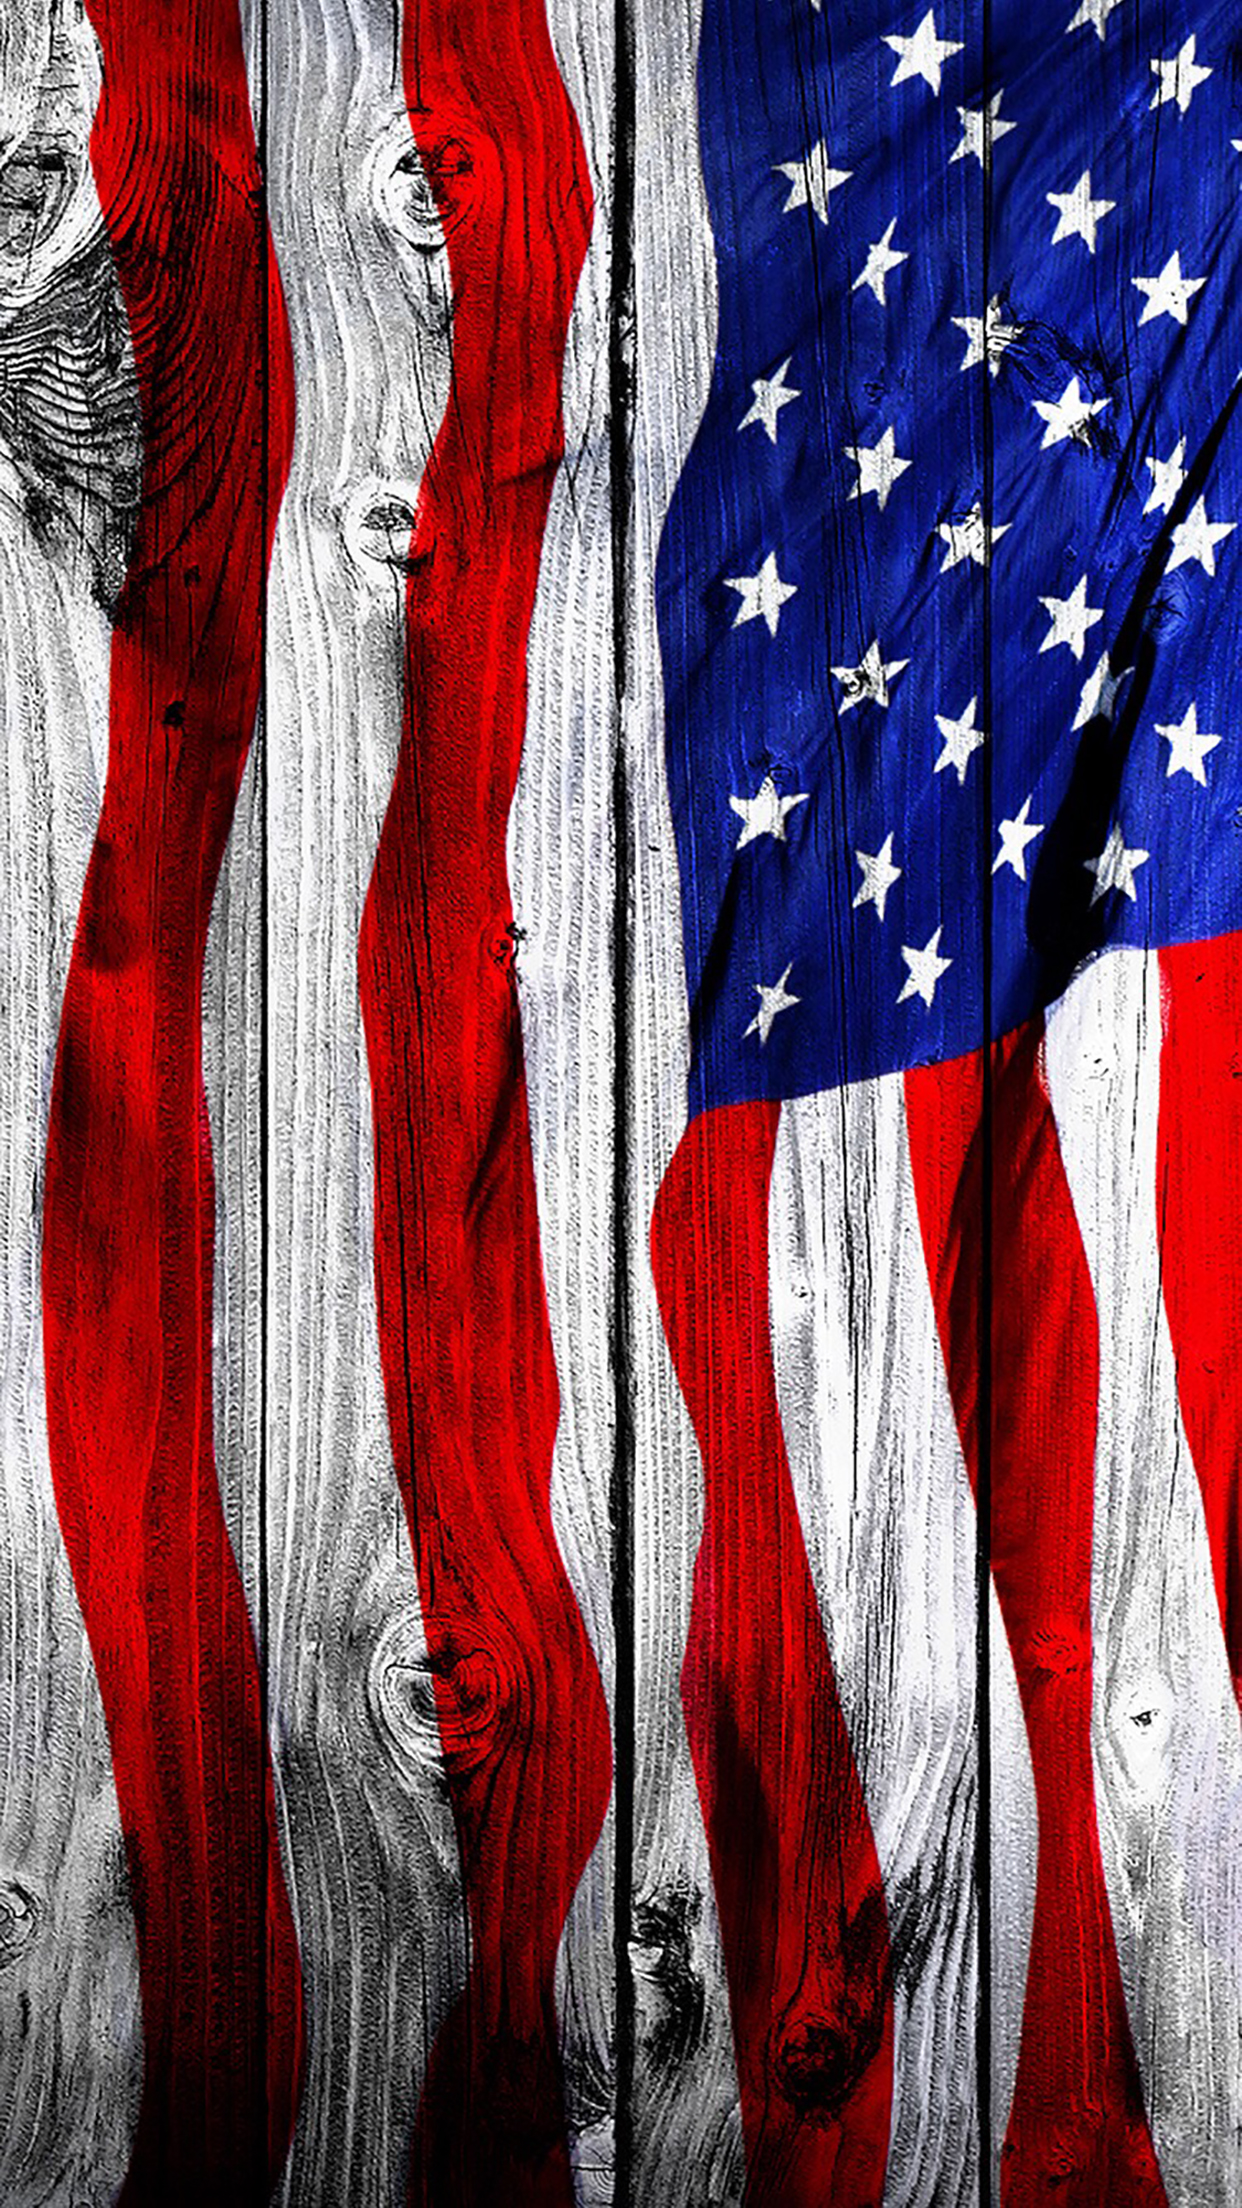 American Flag 1 3Wallpapers iPhone Parallax American Flag : 1